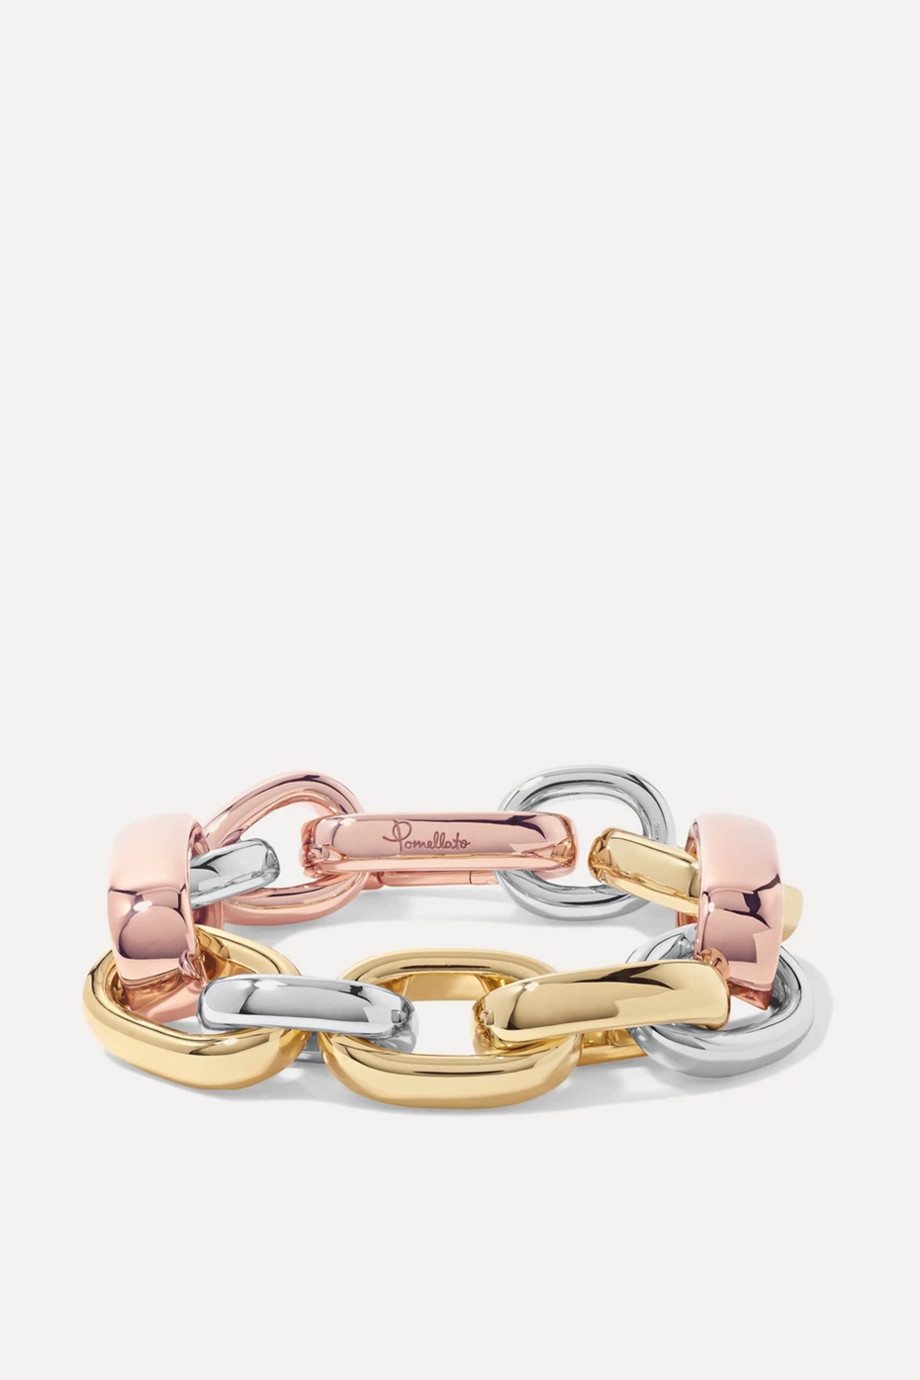 Pomellato Iconica 18-karat yellow and rose gold and rhodium-plated bracelet